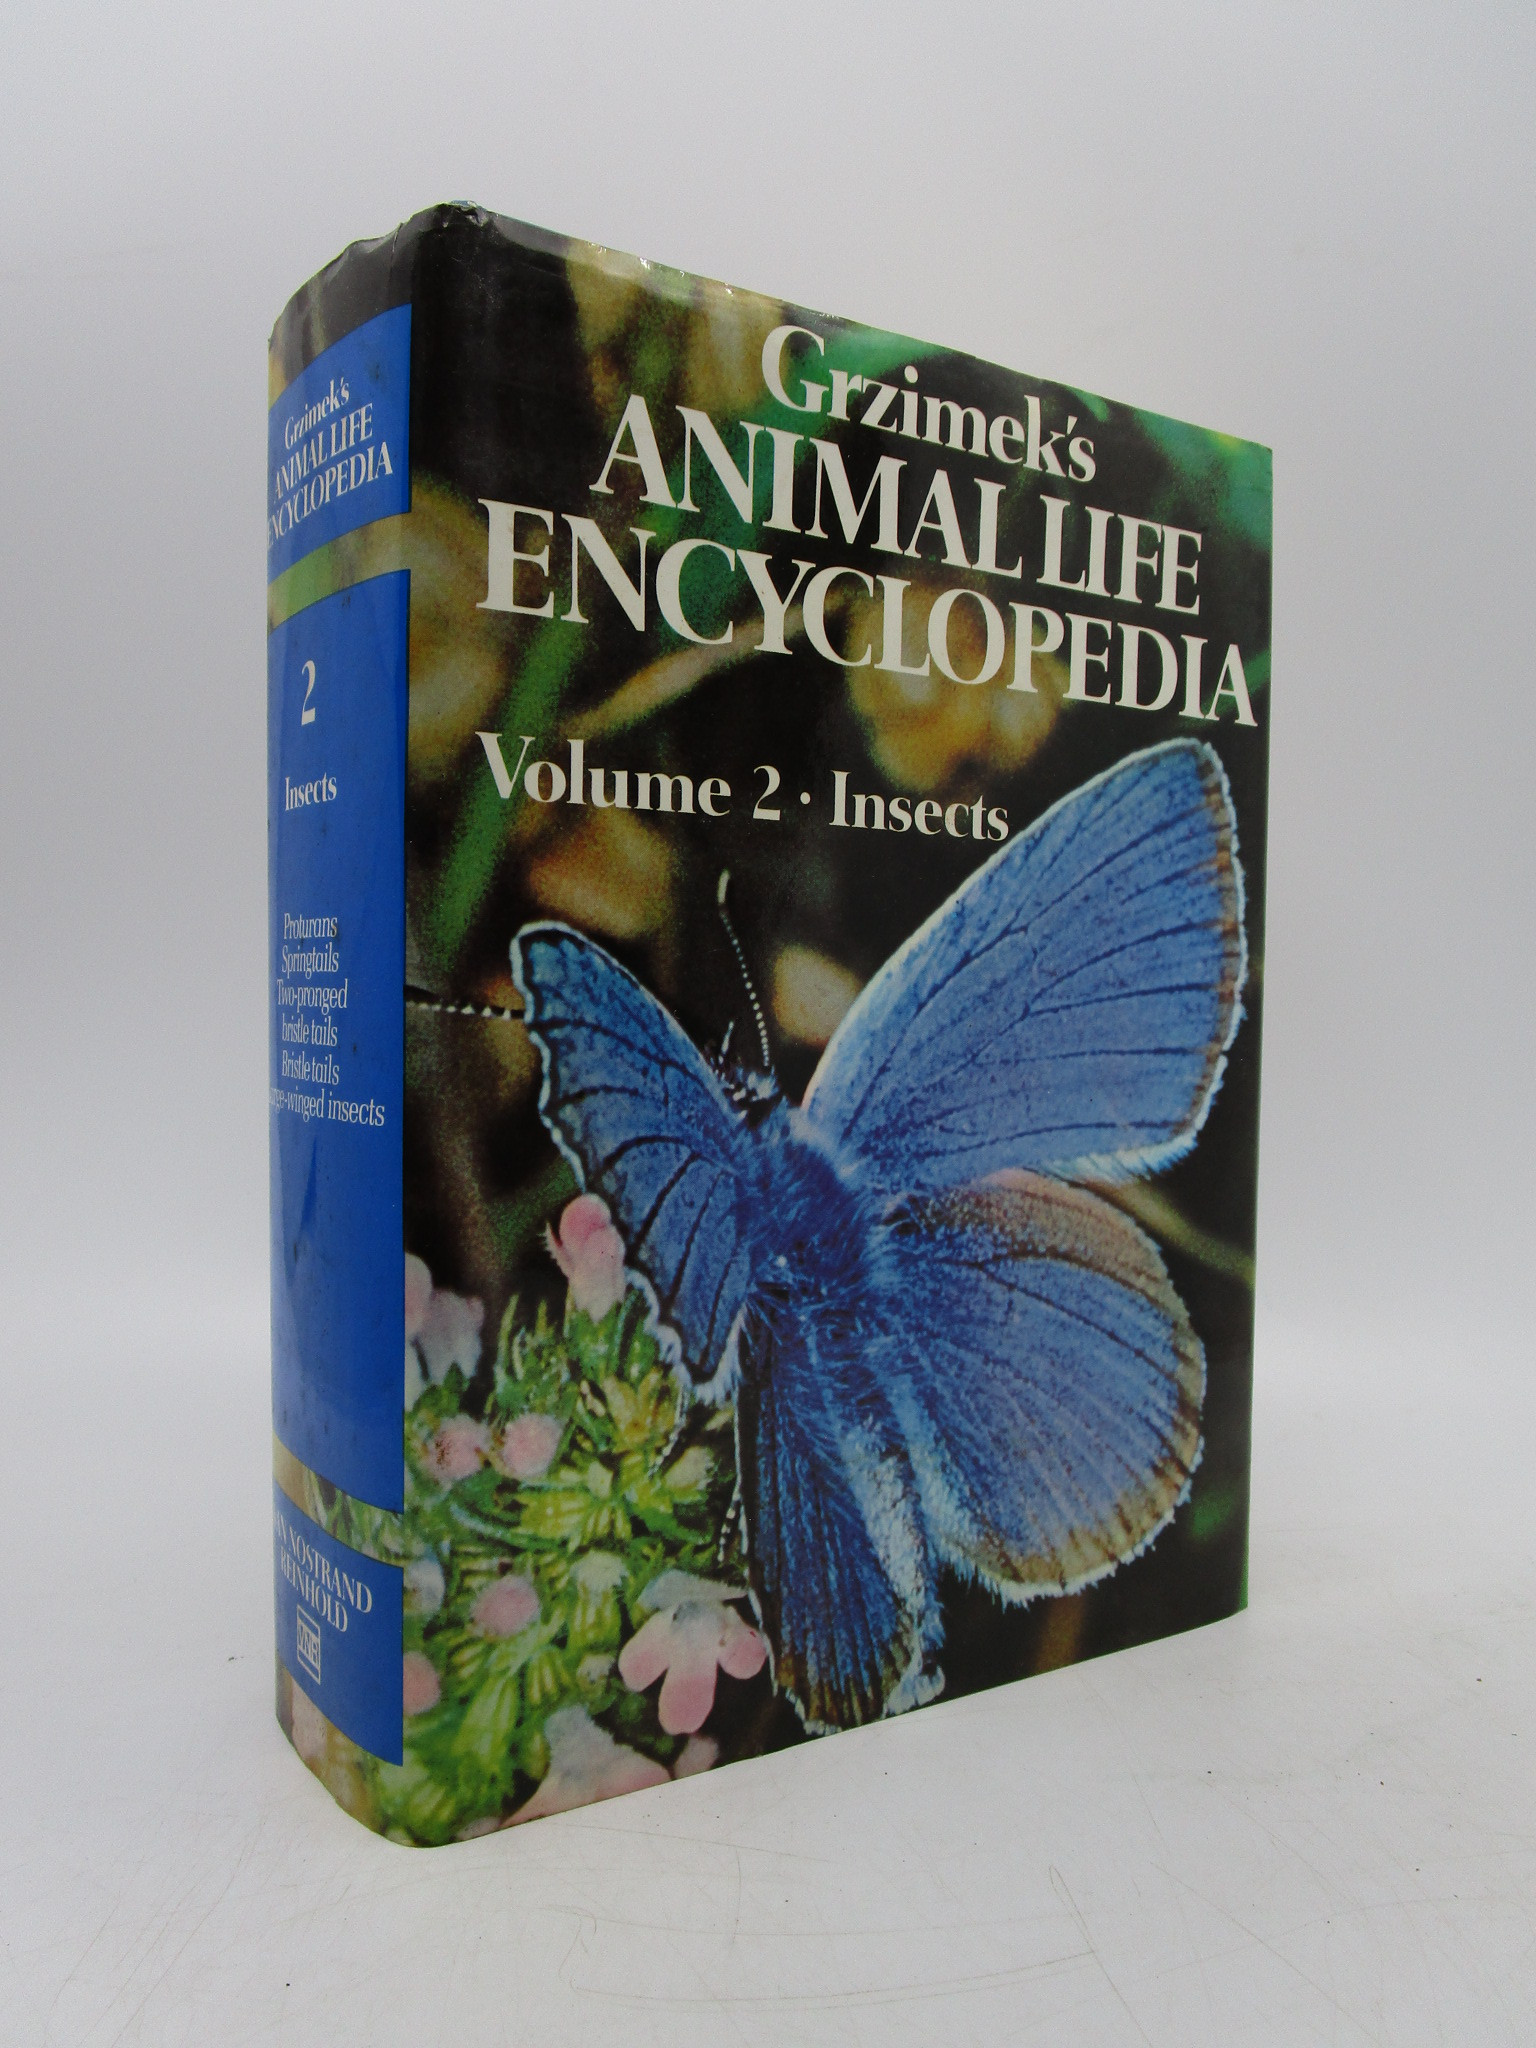 Image for Grzimek's Animal Life Encyclopedia Volume 2: Insects